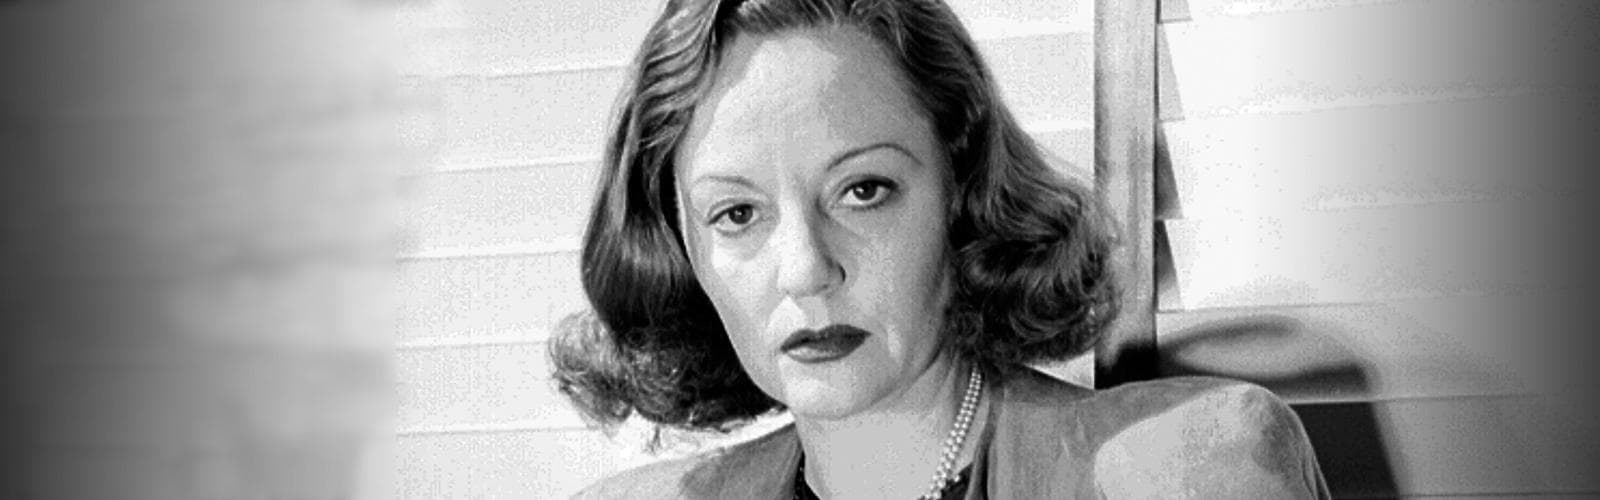 Tallulah Bankhead Full hd wallpapers